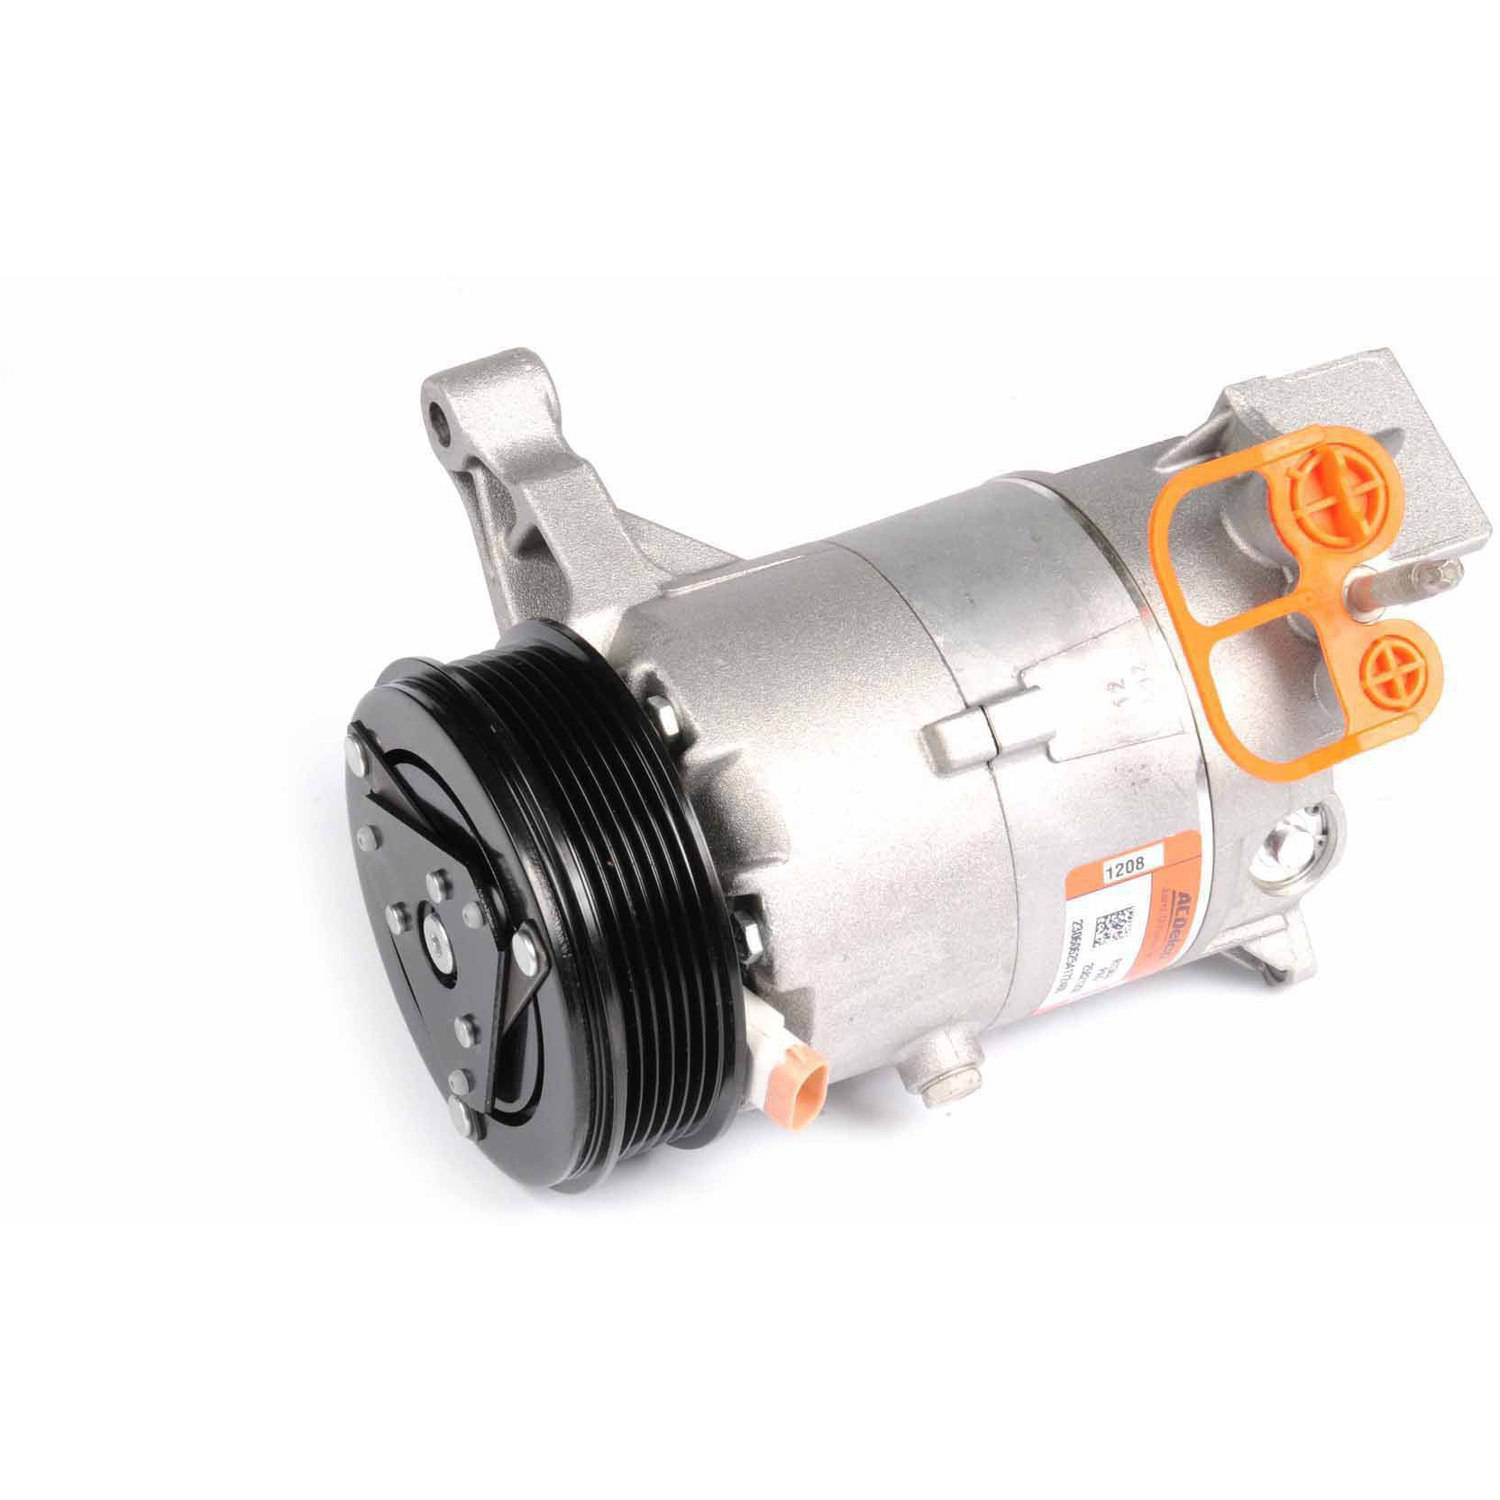 AC Delco 15-21676 A/C Compressor, With clutch New